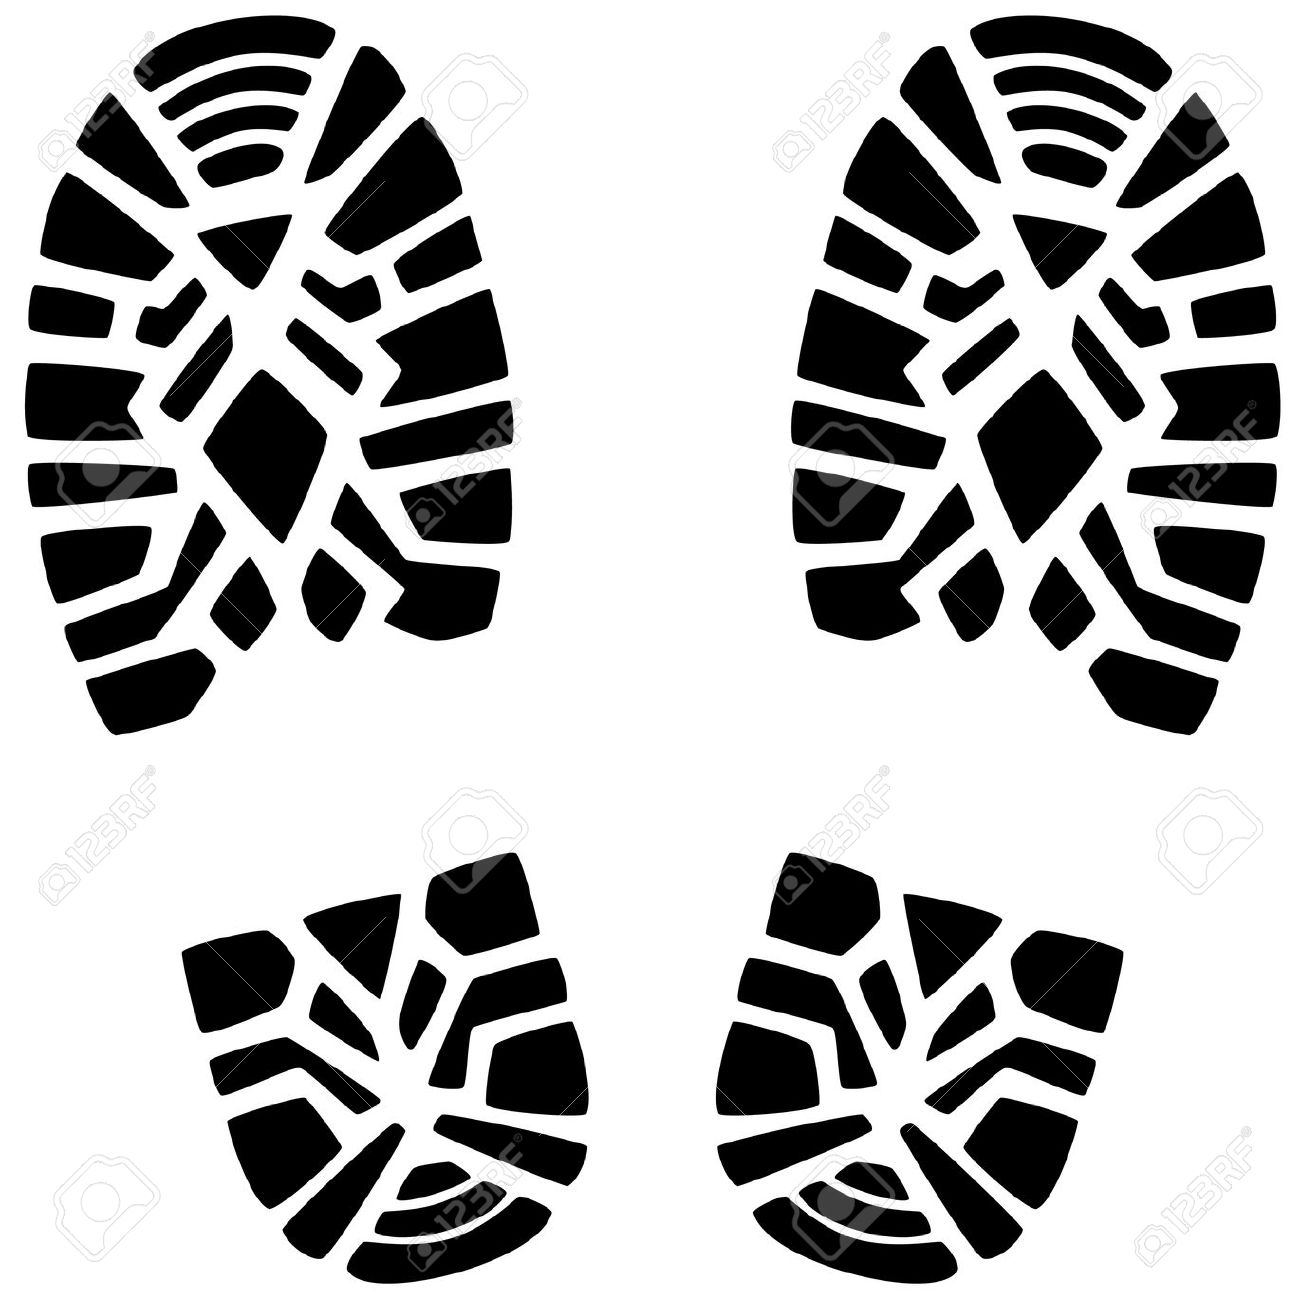 Hiking Boot Footprint Clipart